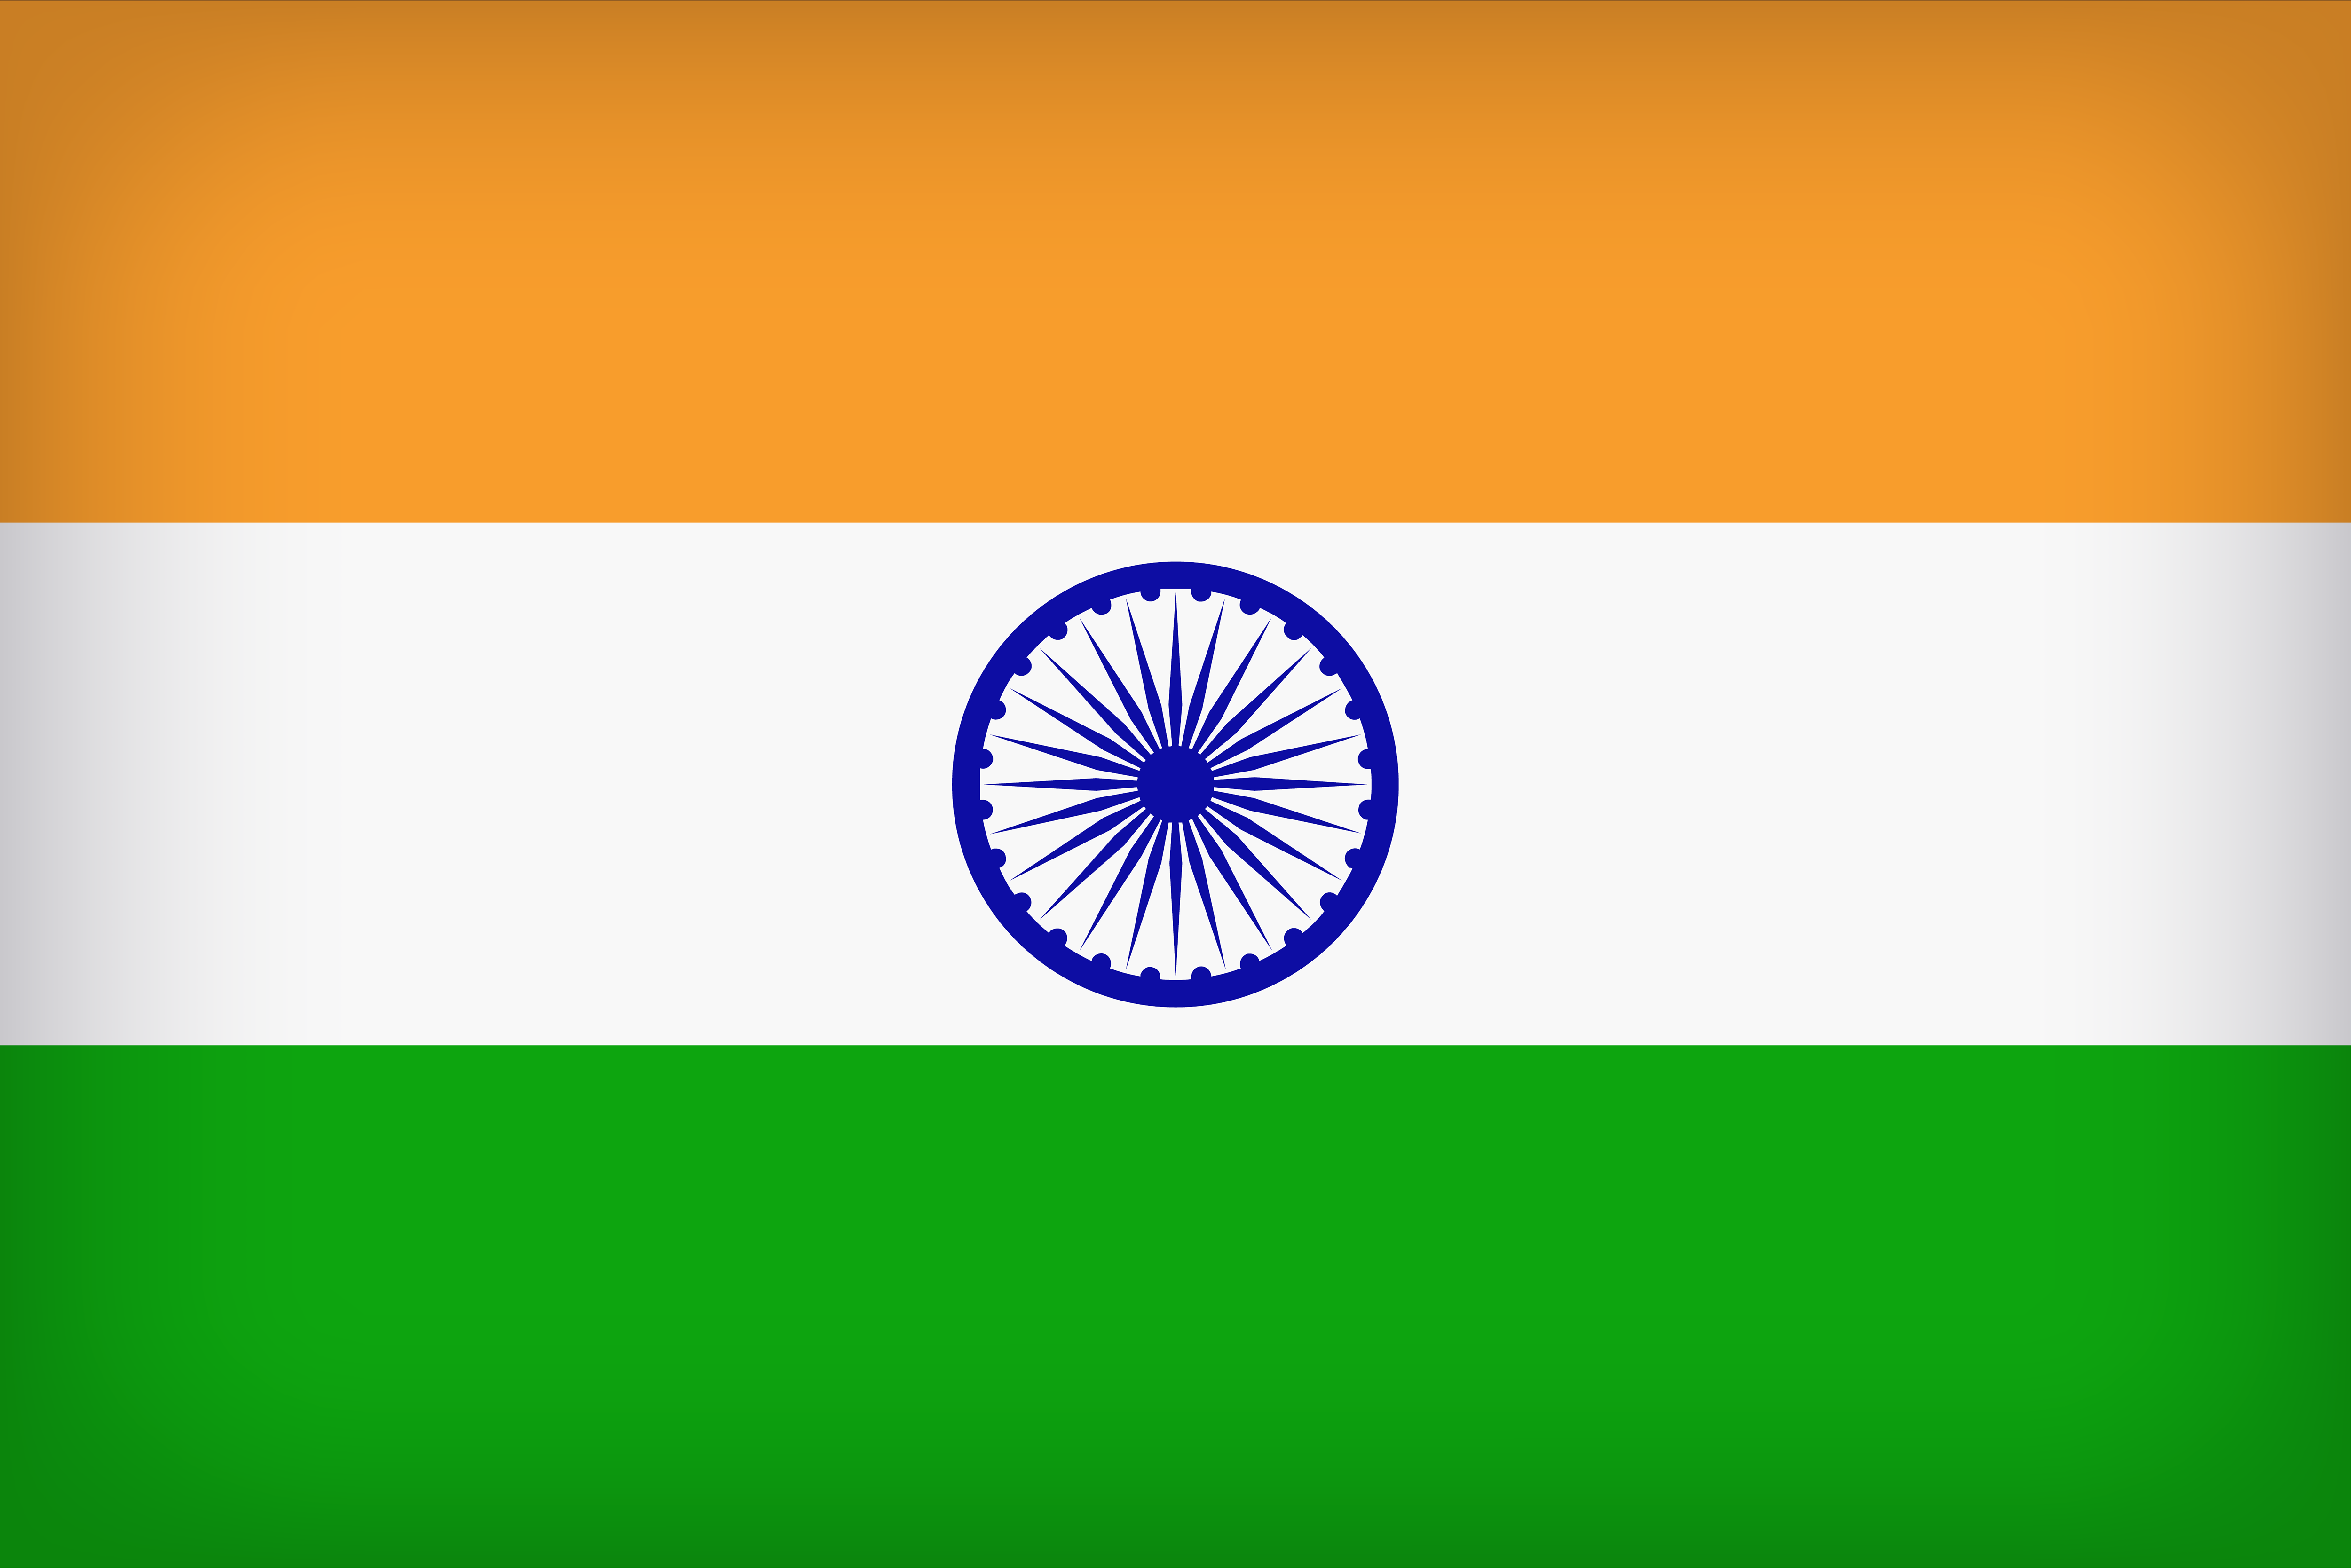 The National Flag Of India 4k Ultra HD Wallpaper